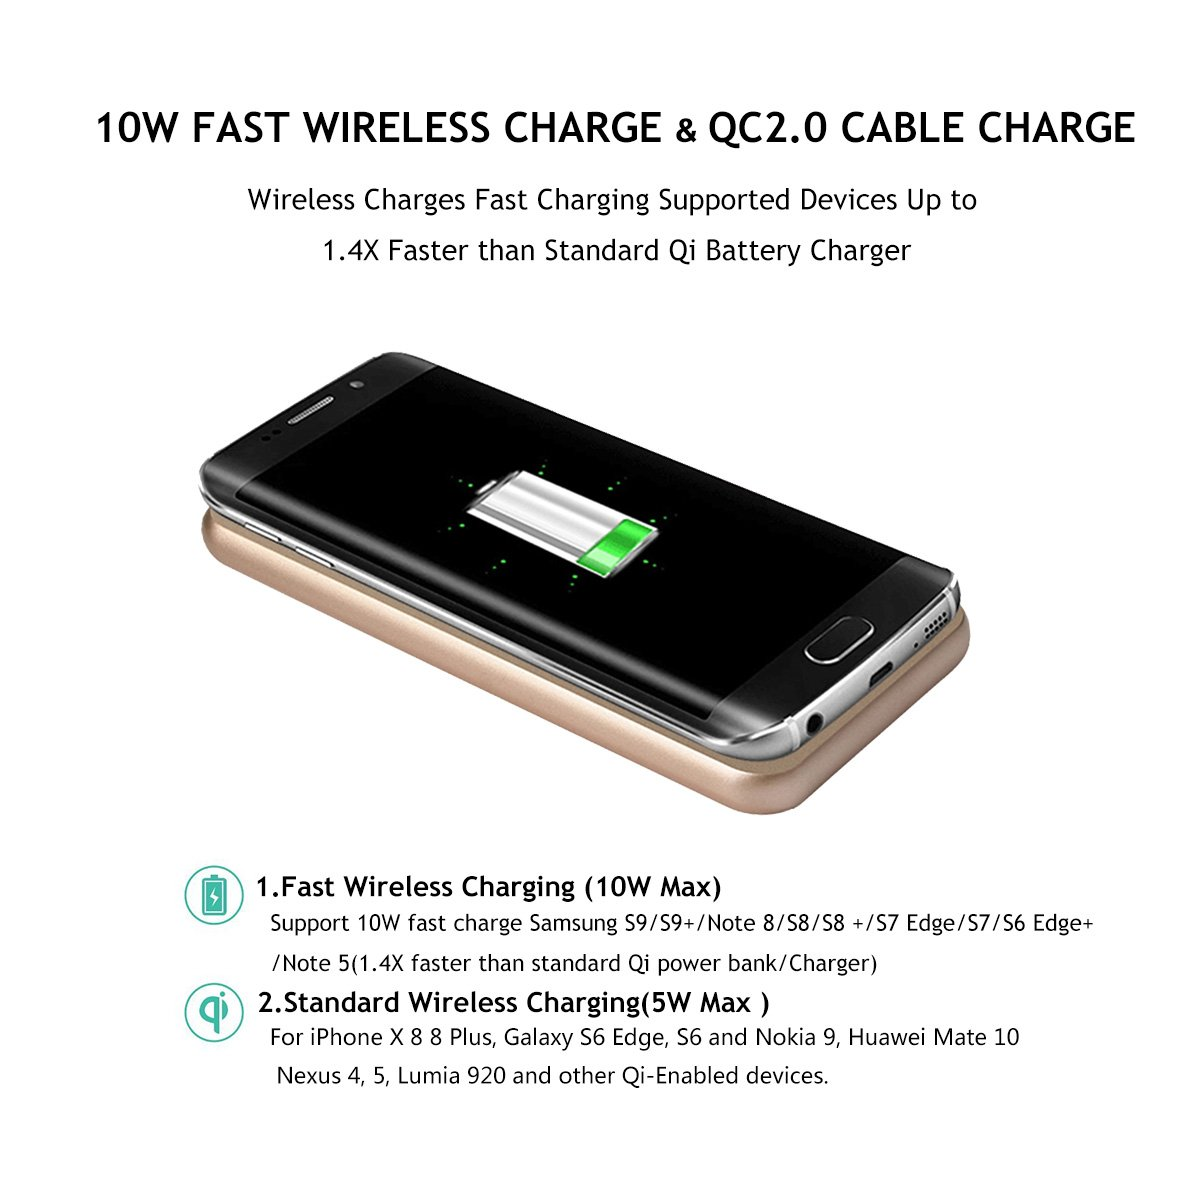 Wireless Portable Charger Qi 10w Fast Charging The Circuit Adapter Charge Mobile Phones Phone Battery Power Bank For Samsung Galaxy Note 9 8s9 Pluss8 S8s7 Edge 8000mah External